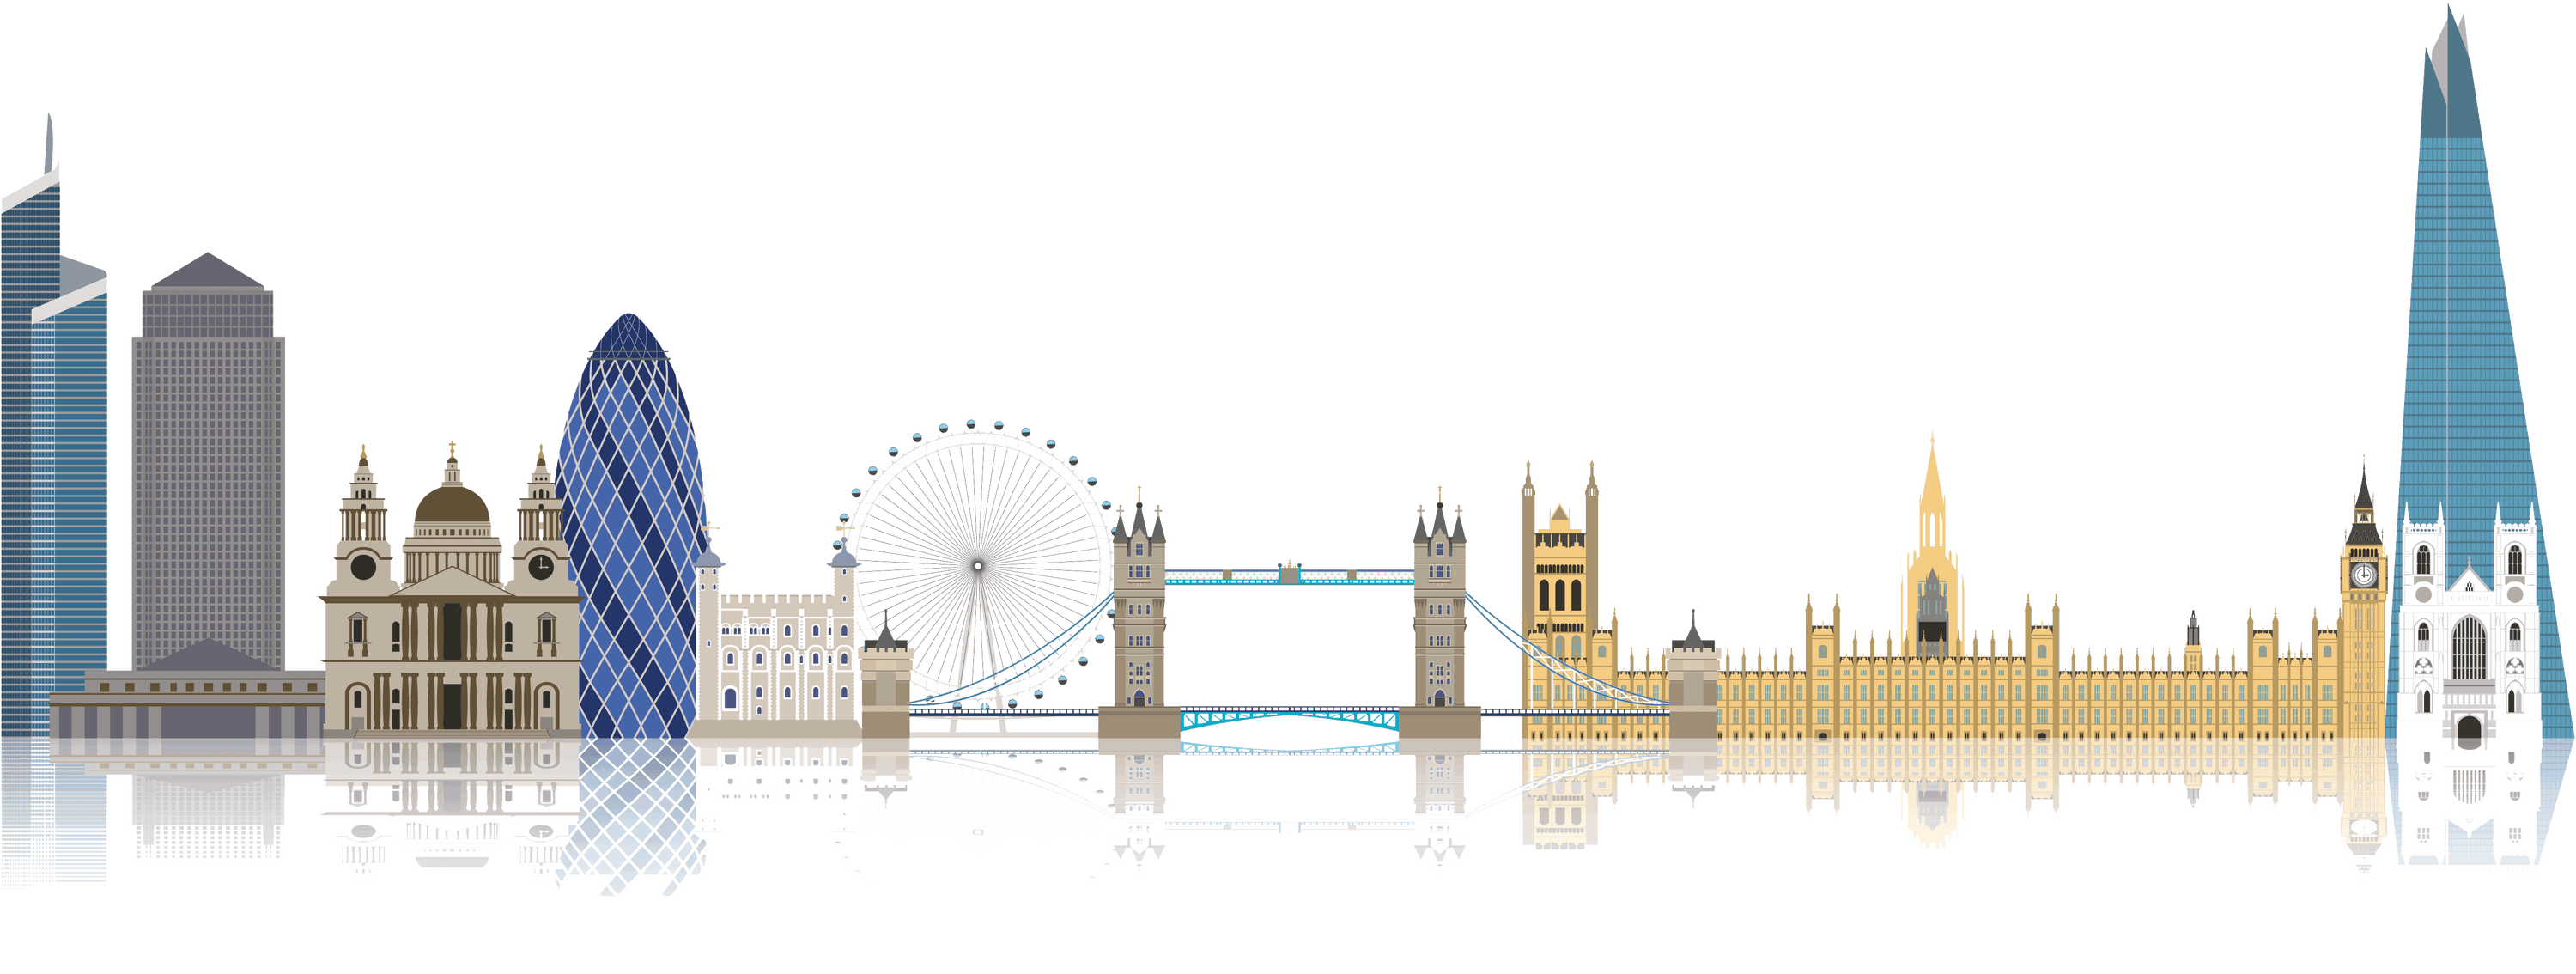 London eye png stickpng. City clipart transparent background